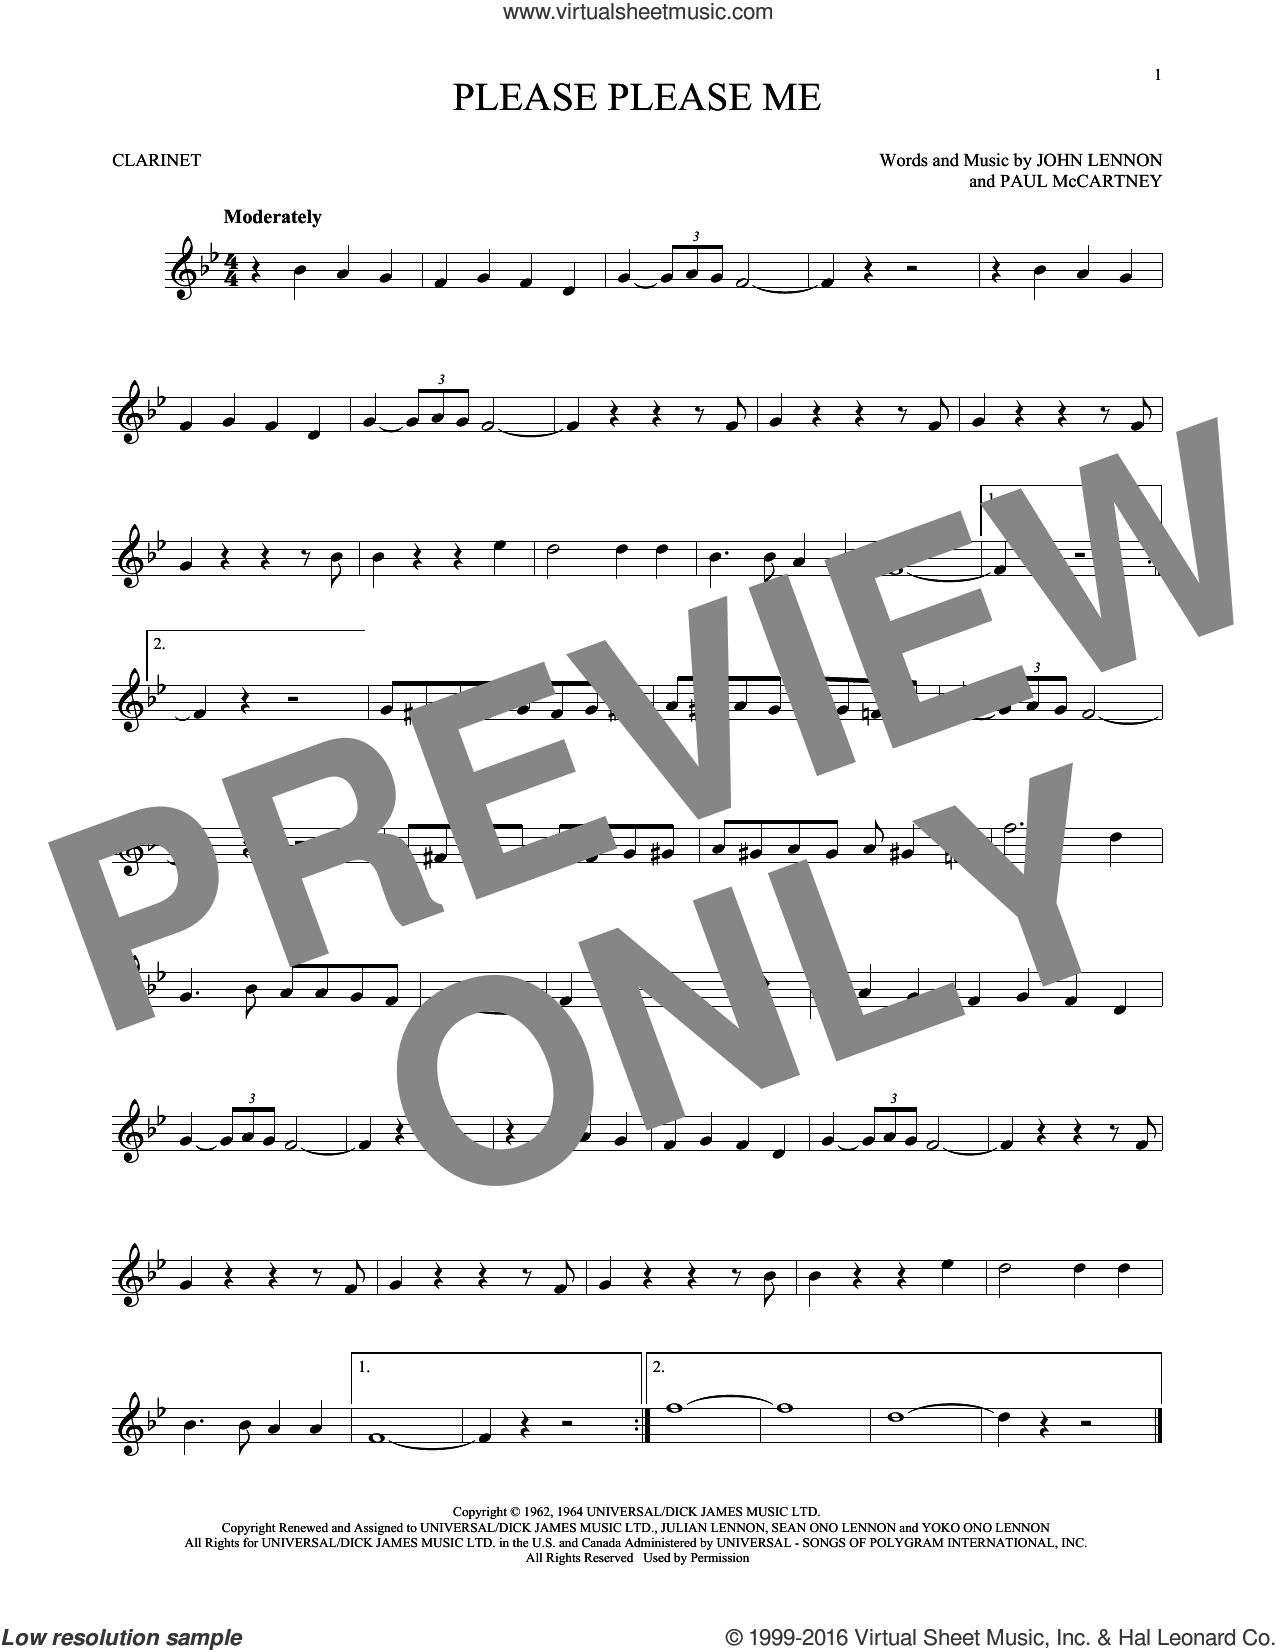 Please Please Me sheet music for clarinet solo by The Beatles, John Lennon and Paul McCartney. Score Image Preview.